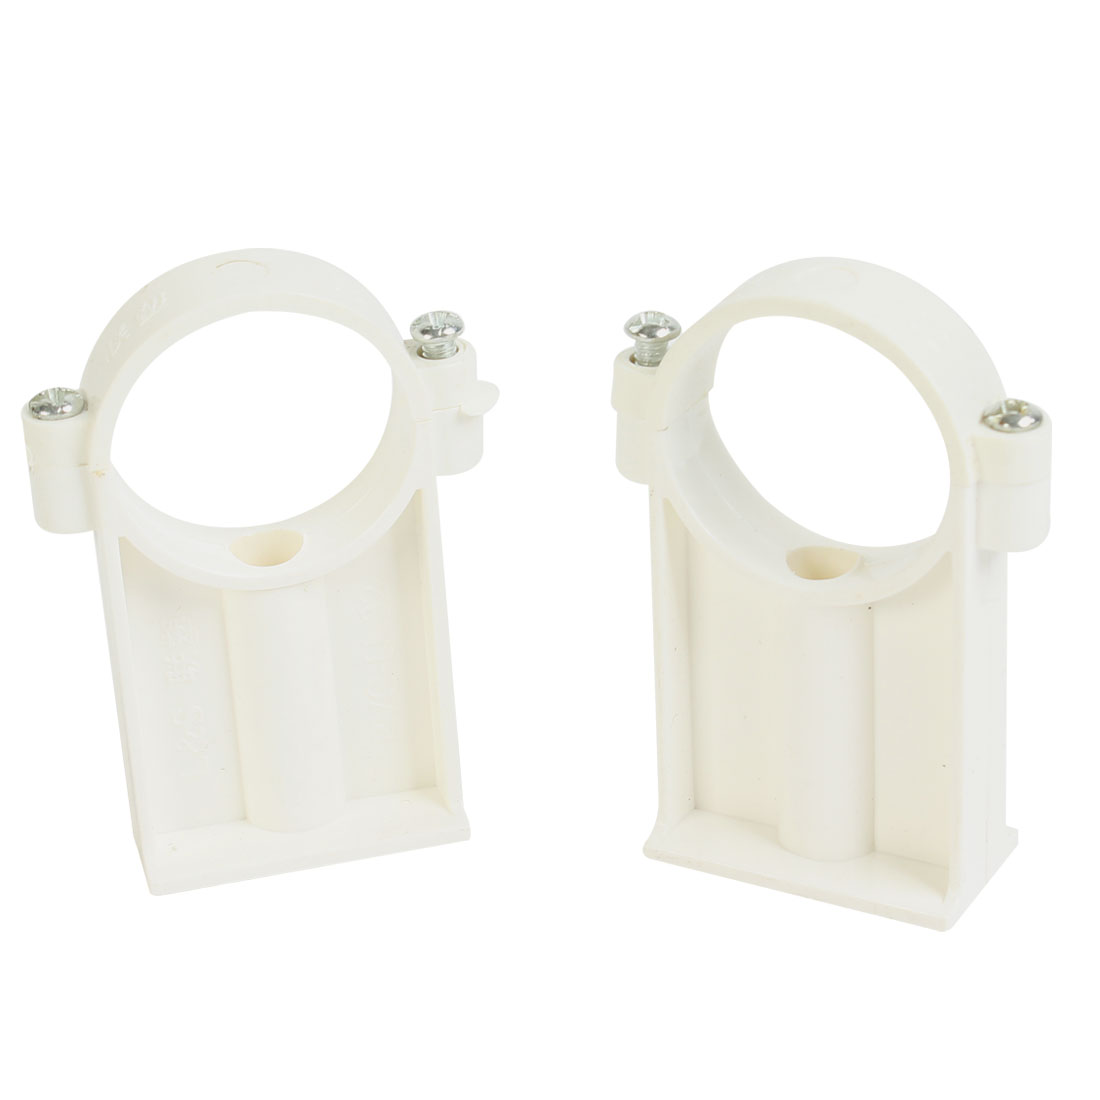 2 Pcs 32mm Dia Water Supply Pipe Clamps Screw Clips Fitting